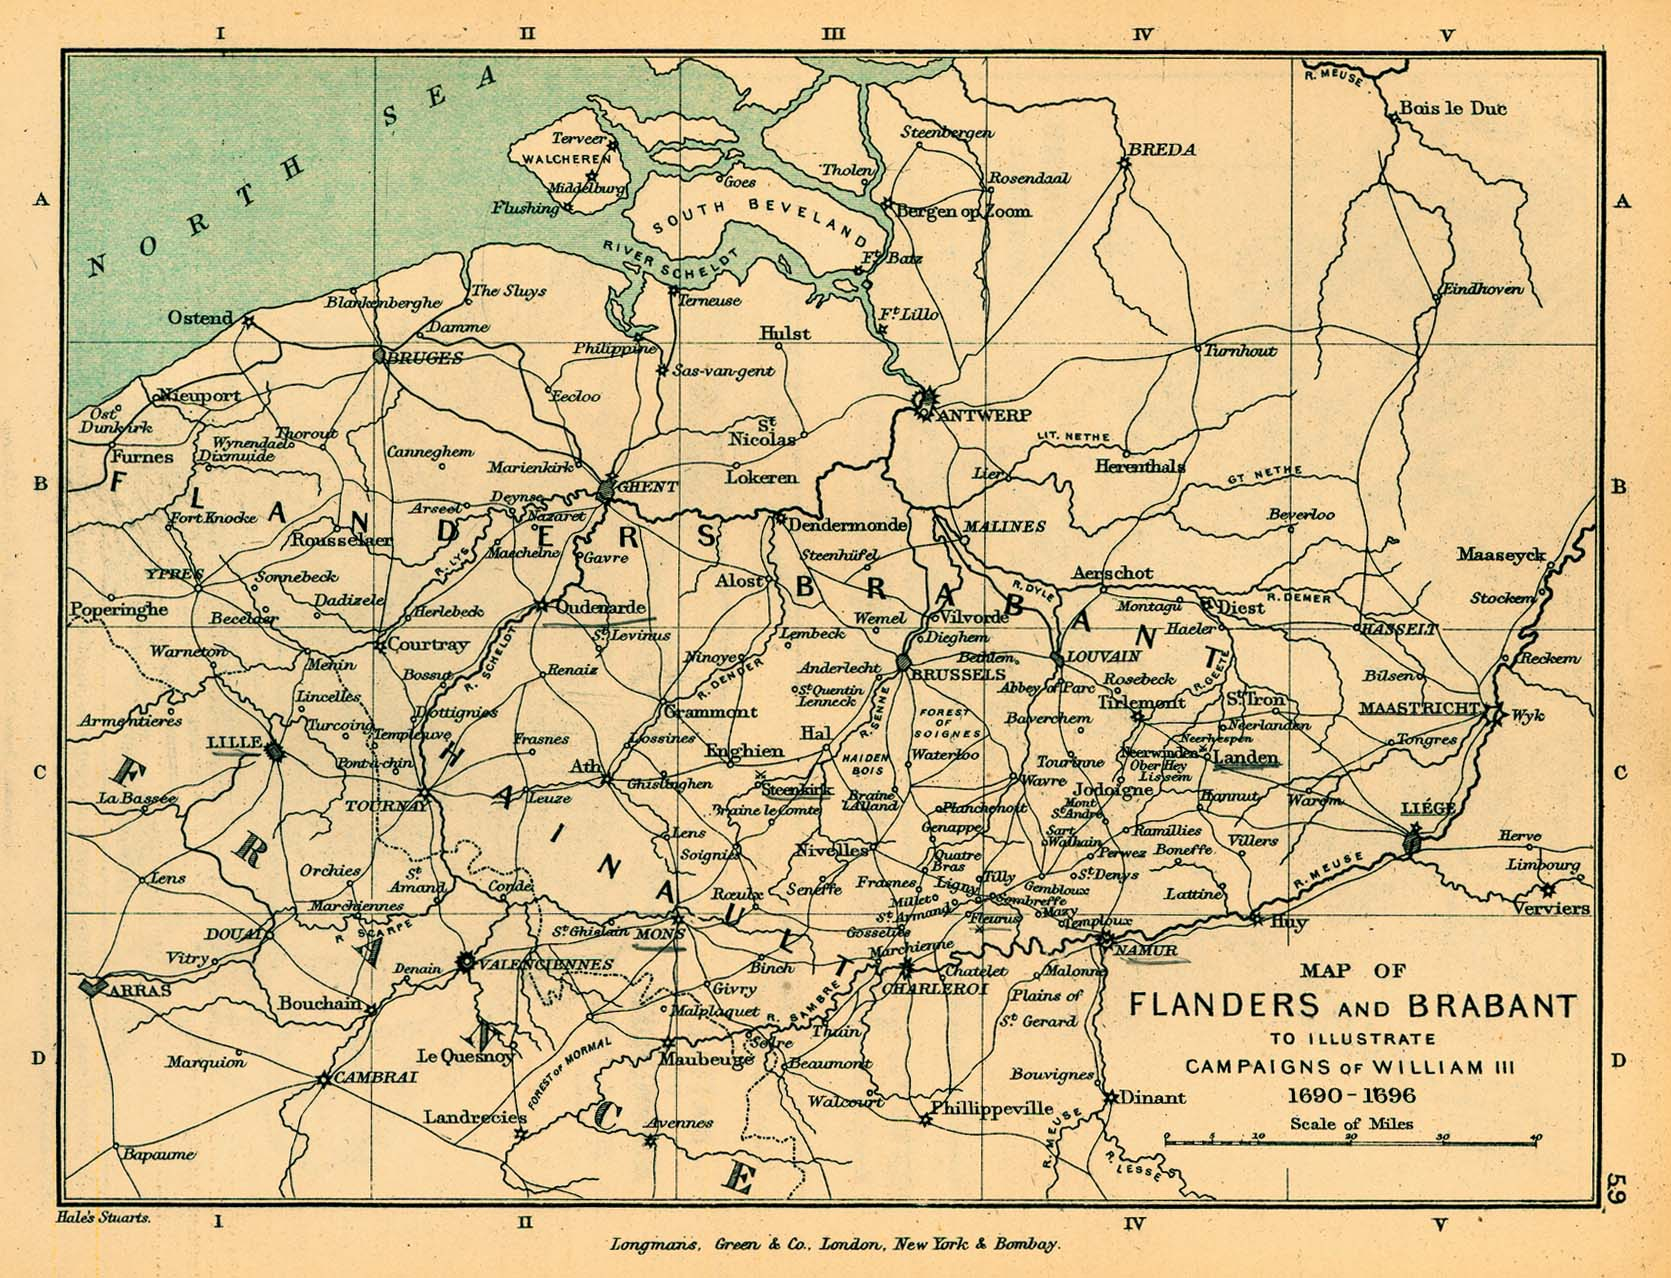 Map of the Flanders and Brabant, Illustrating the Campaign of William III, 1690 - 1696